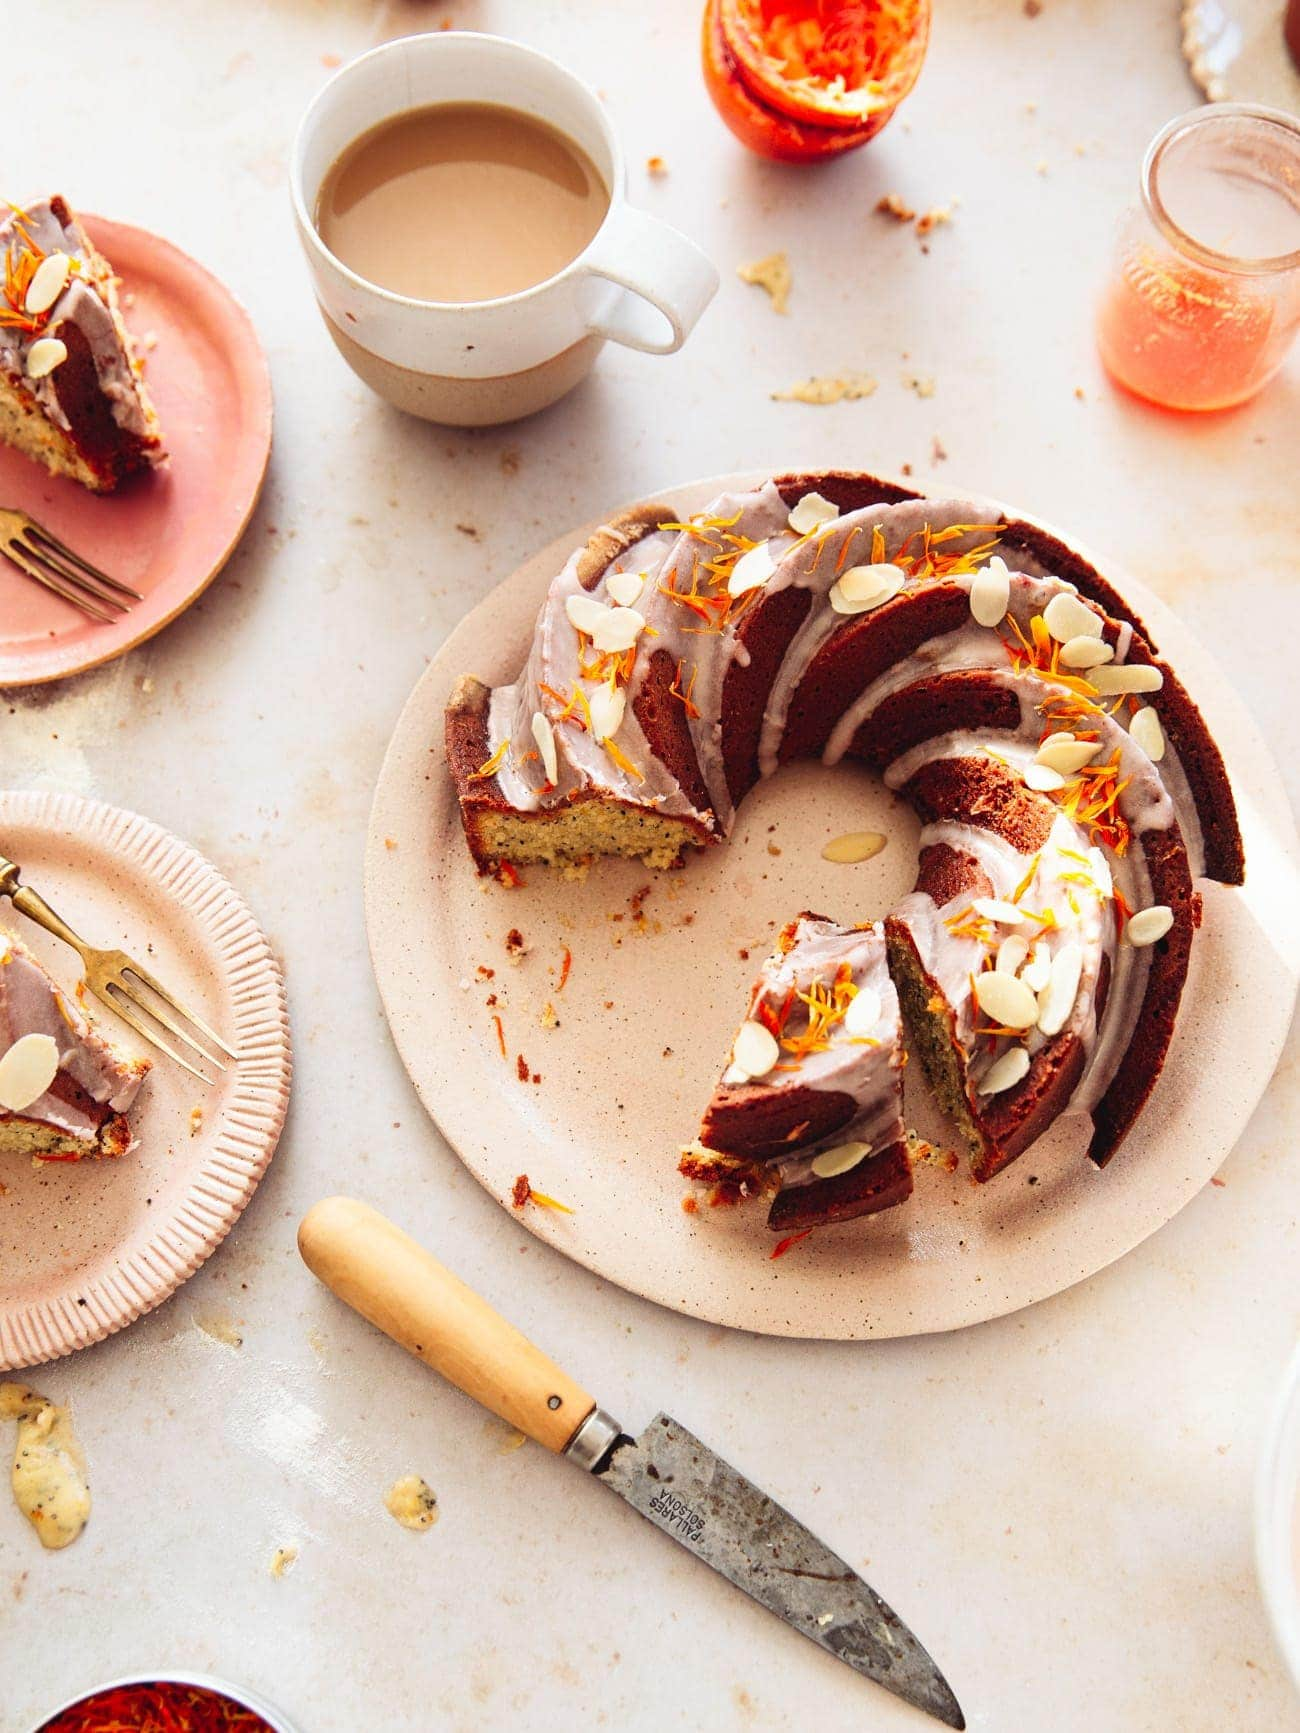 Blood Orange Poppy Seed Bundt Cake by food blogger Izy Hossack